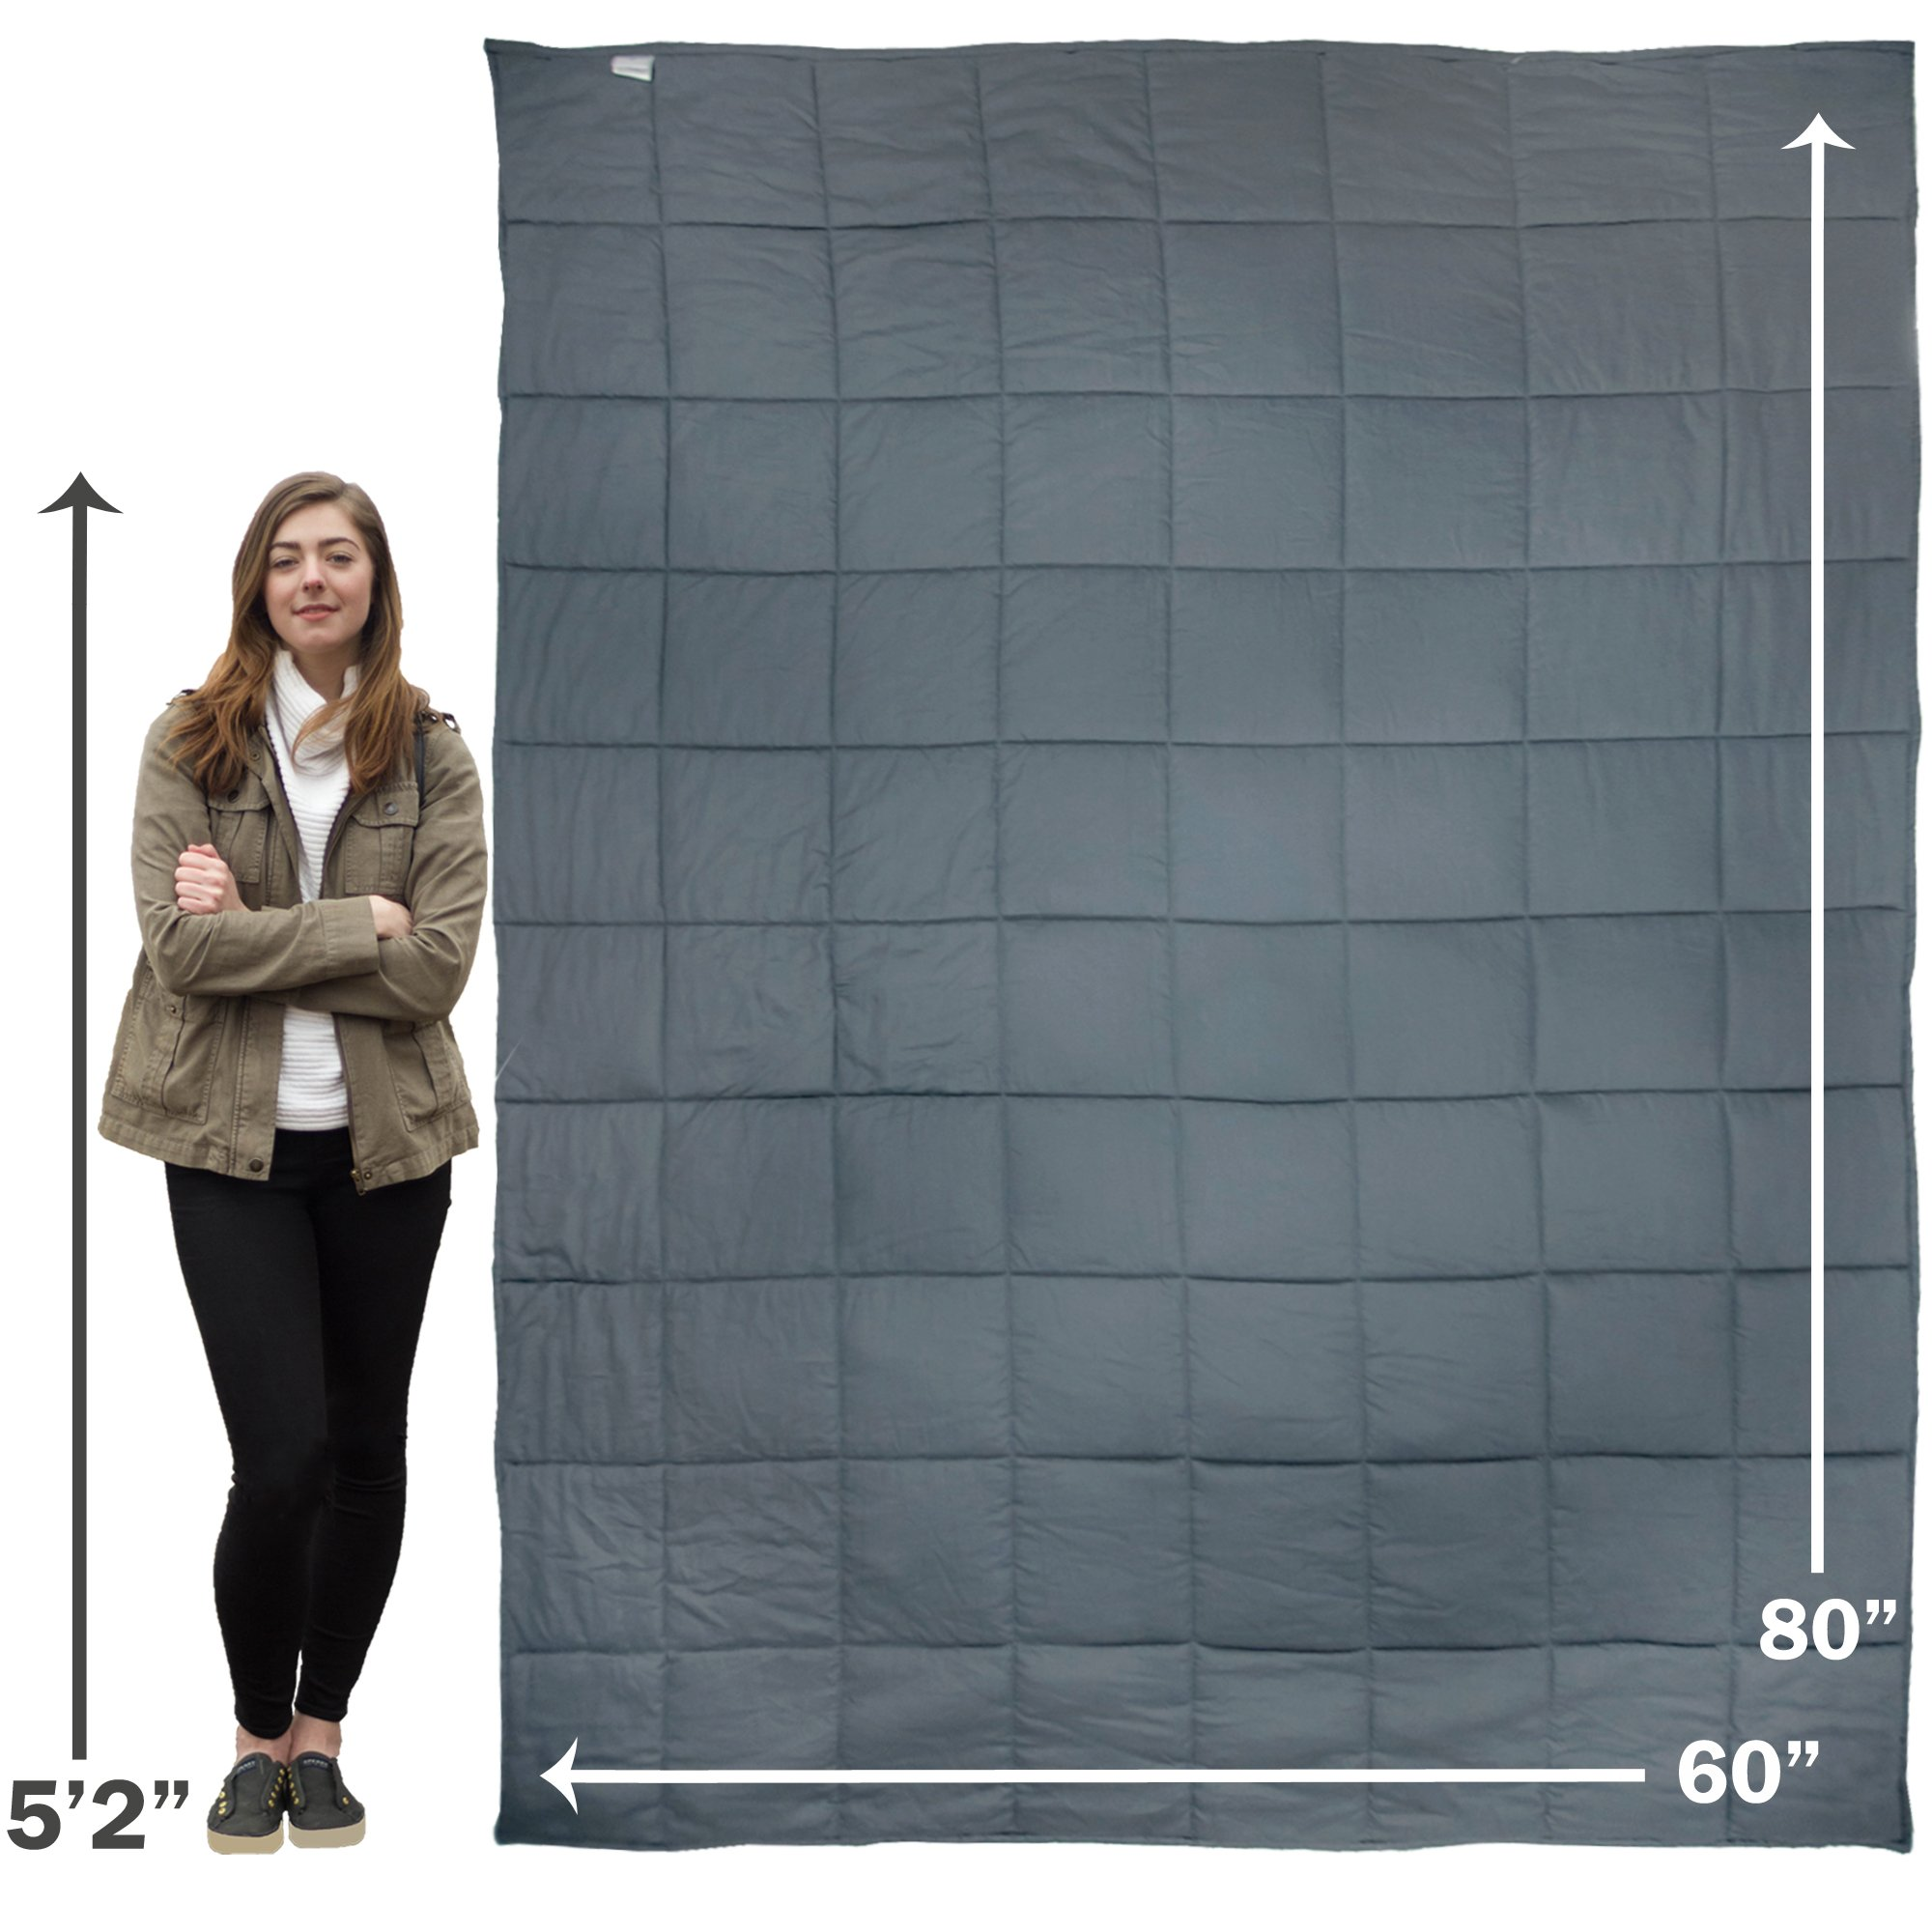 Premium Oversized 15 lb Weighted Anxiety Blanket for Adults weighing 100-150 lbs, Helps with Anxiety, Autism, OCD, ADHD, and Sensory Disorders (60''x80''), Sleep better with AnxietyBlankets